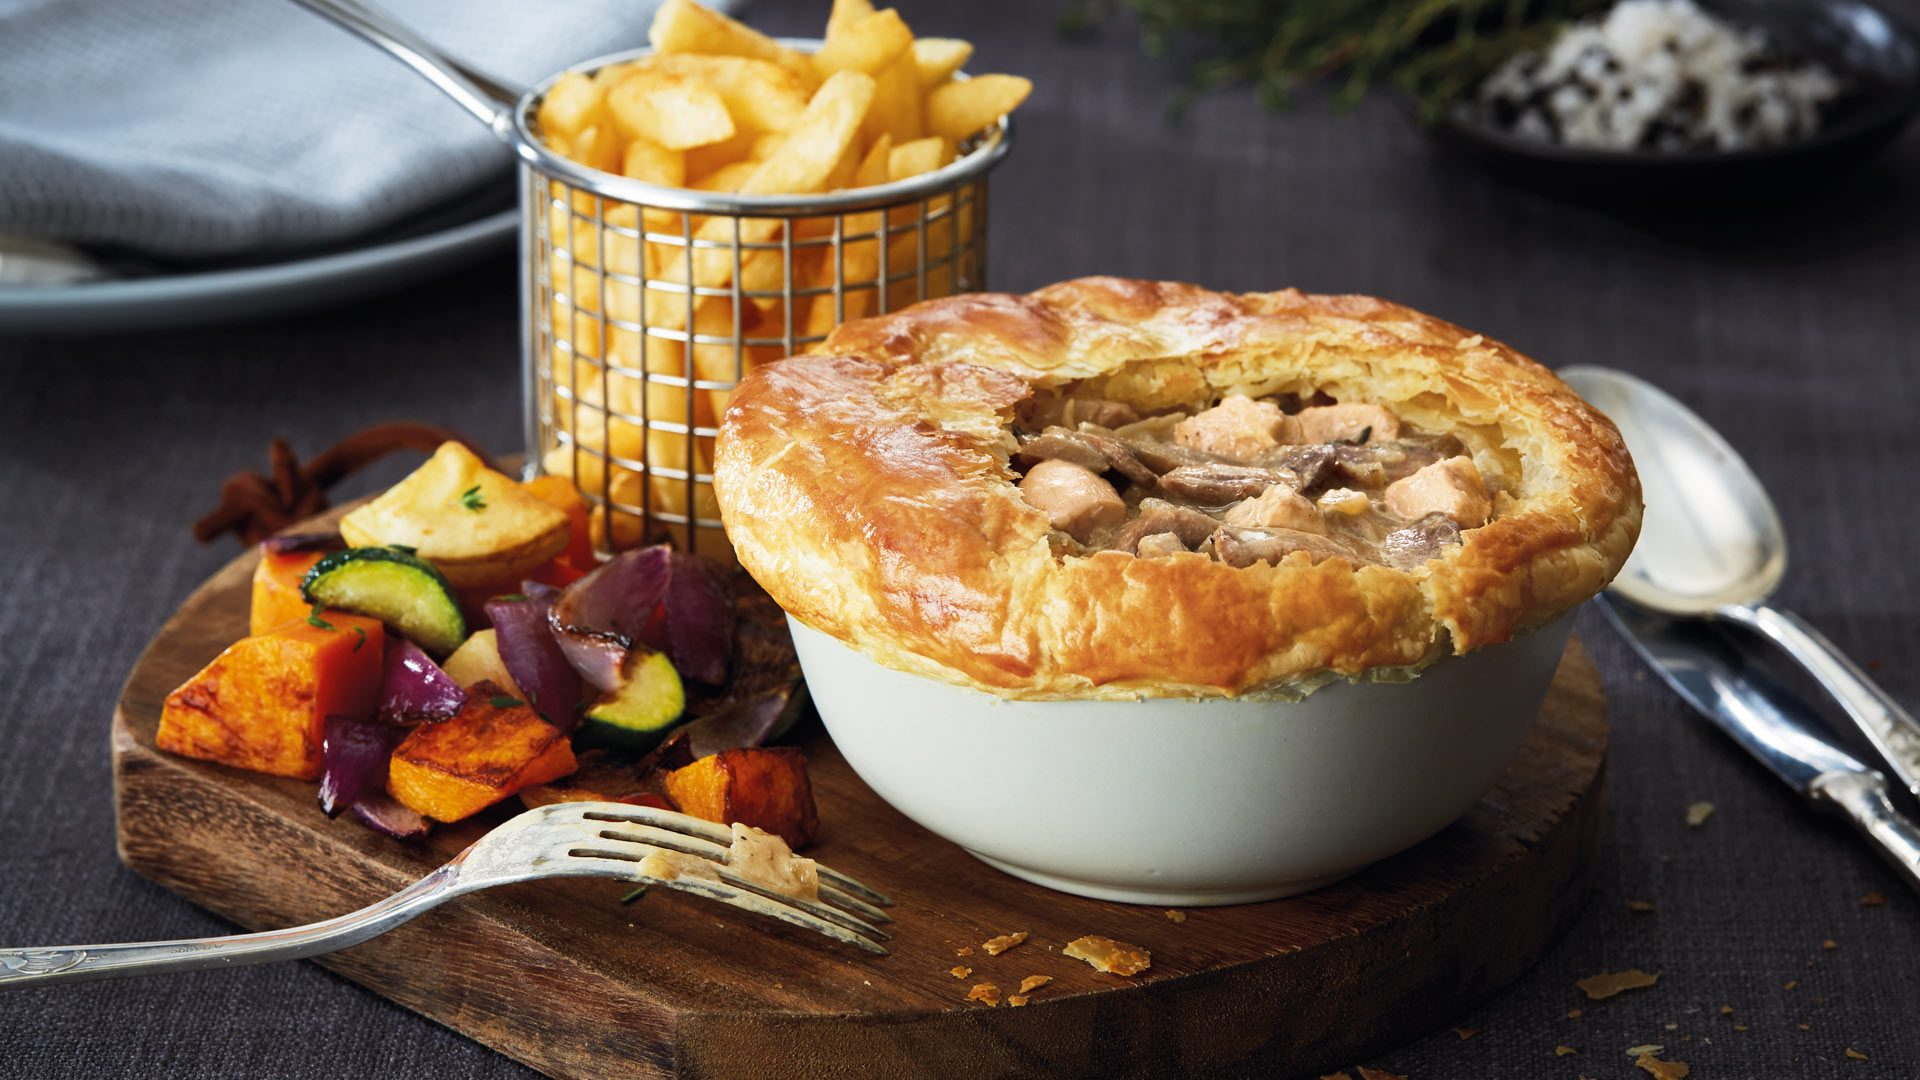 Keg Chicken and Mushroom Pies